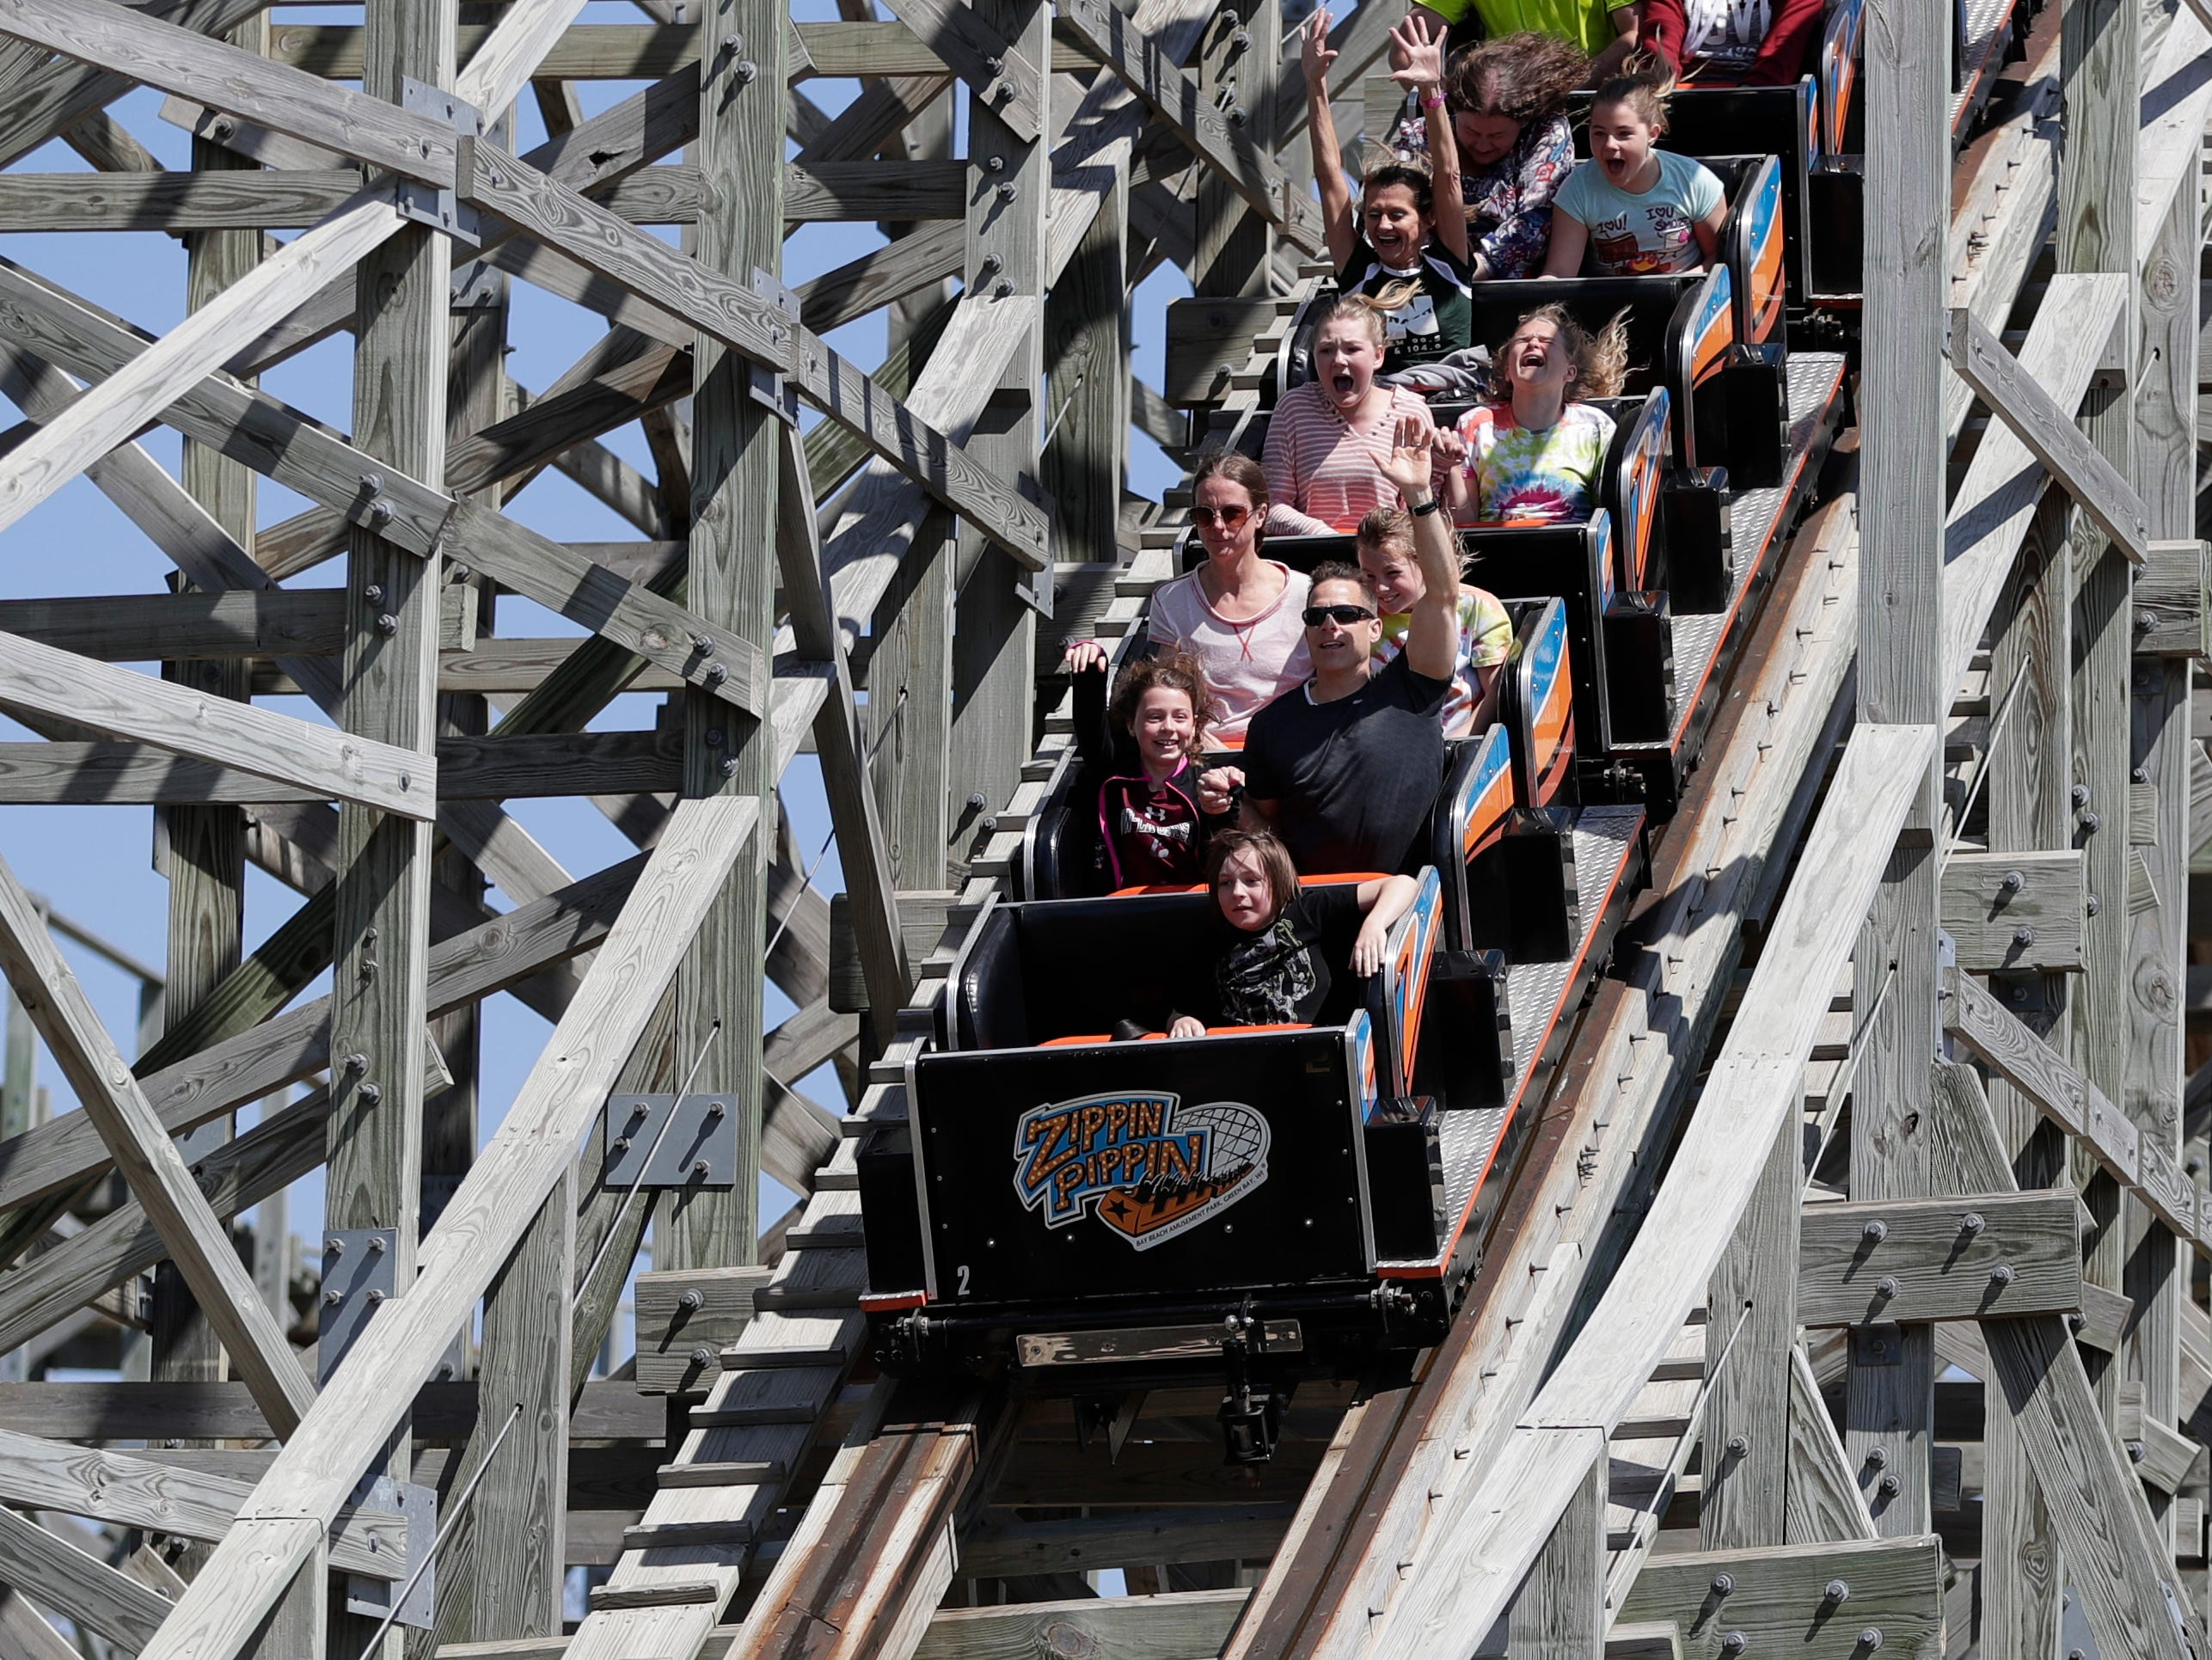 Bay Beach Amusement Park opened for the 2019 season on May 4, 2019, in Green Bay, Wis. Sarah Kloepping/USA TODAY NETWORK-Wisconsin